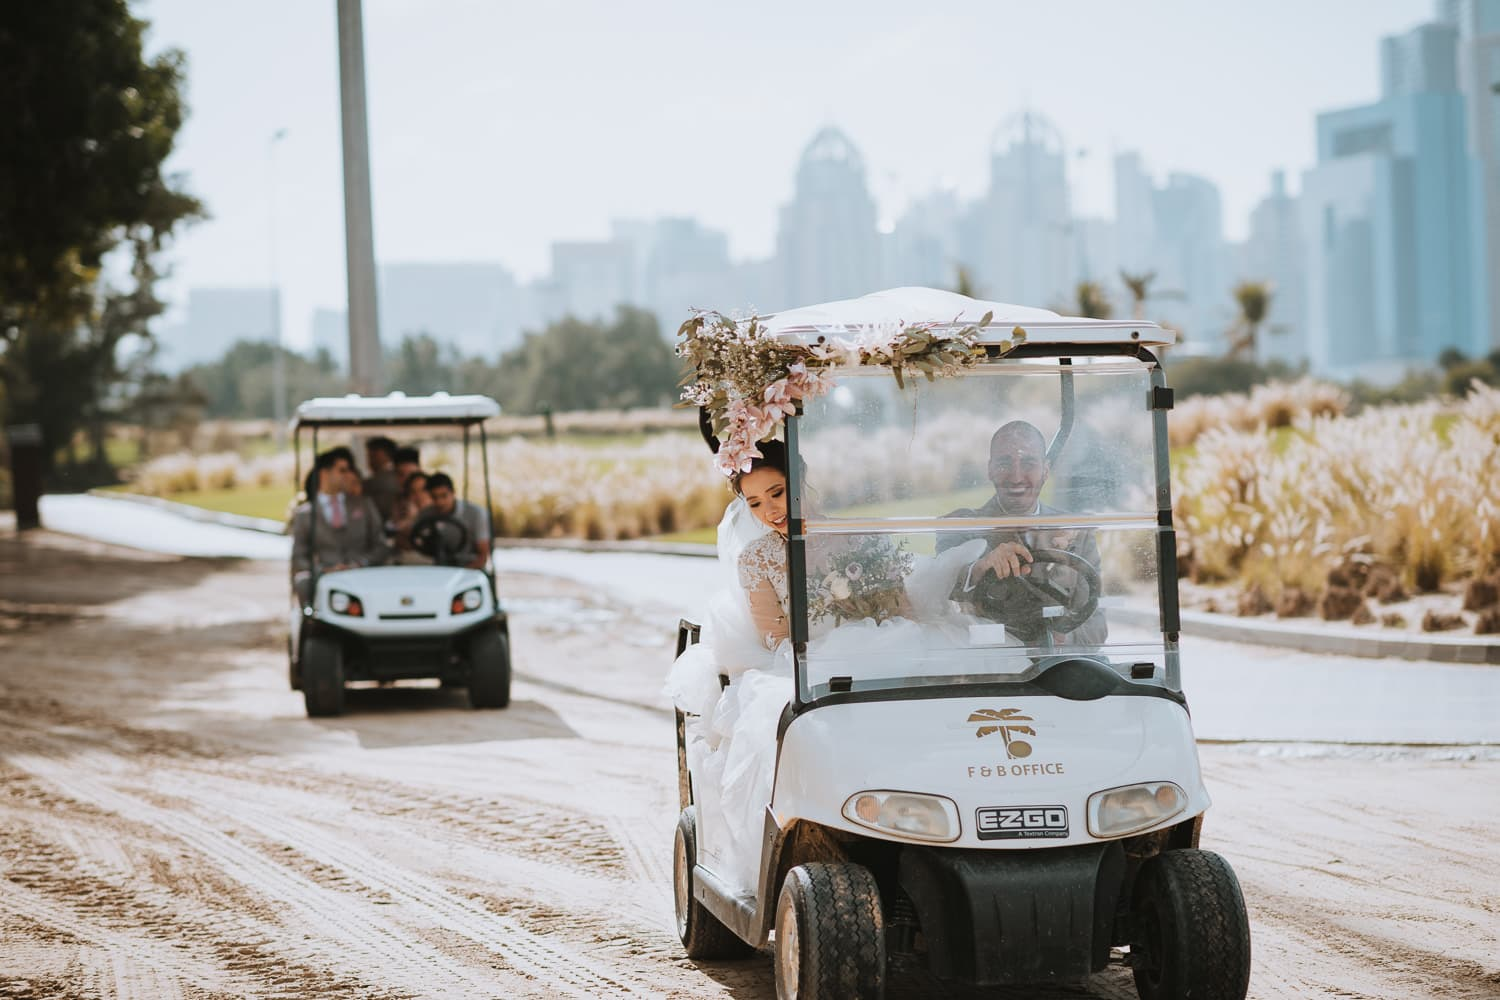 Emirates Golf Club Buggy rides with bridal party